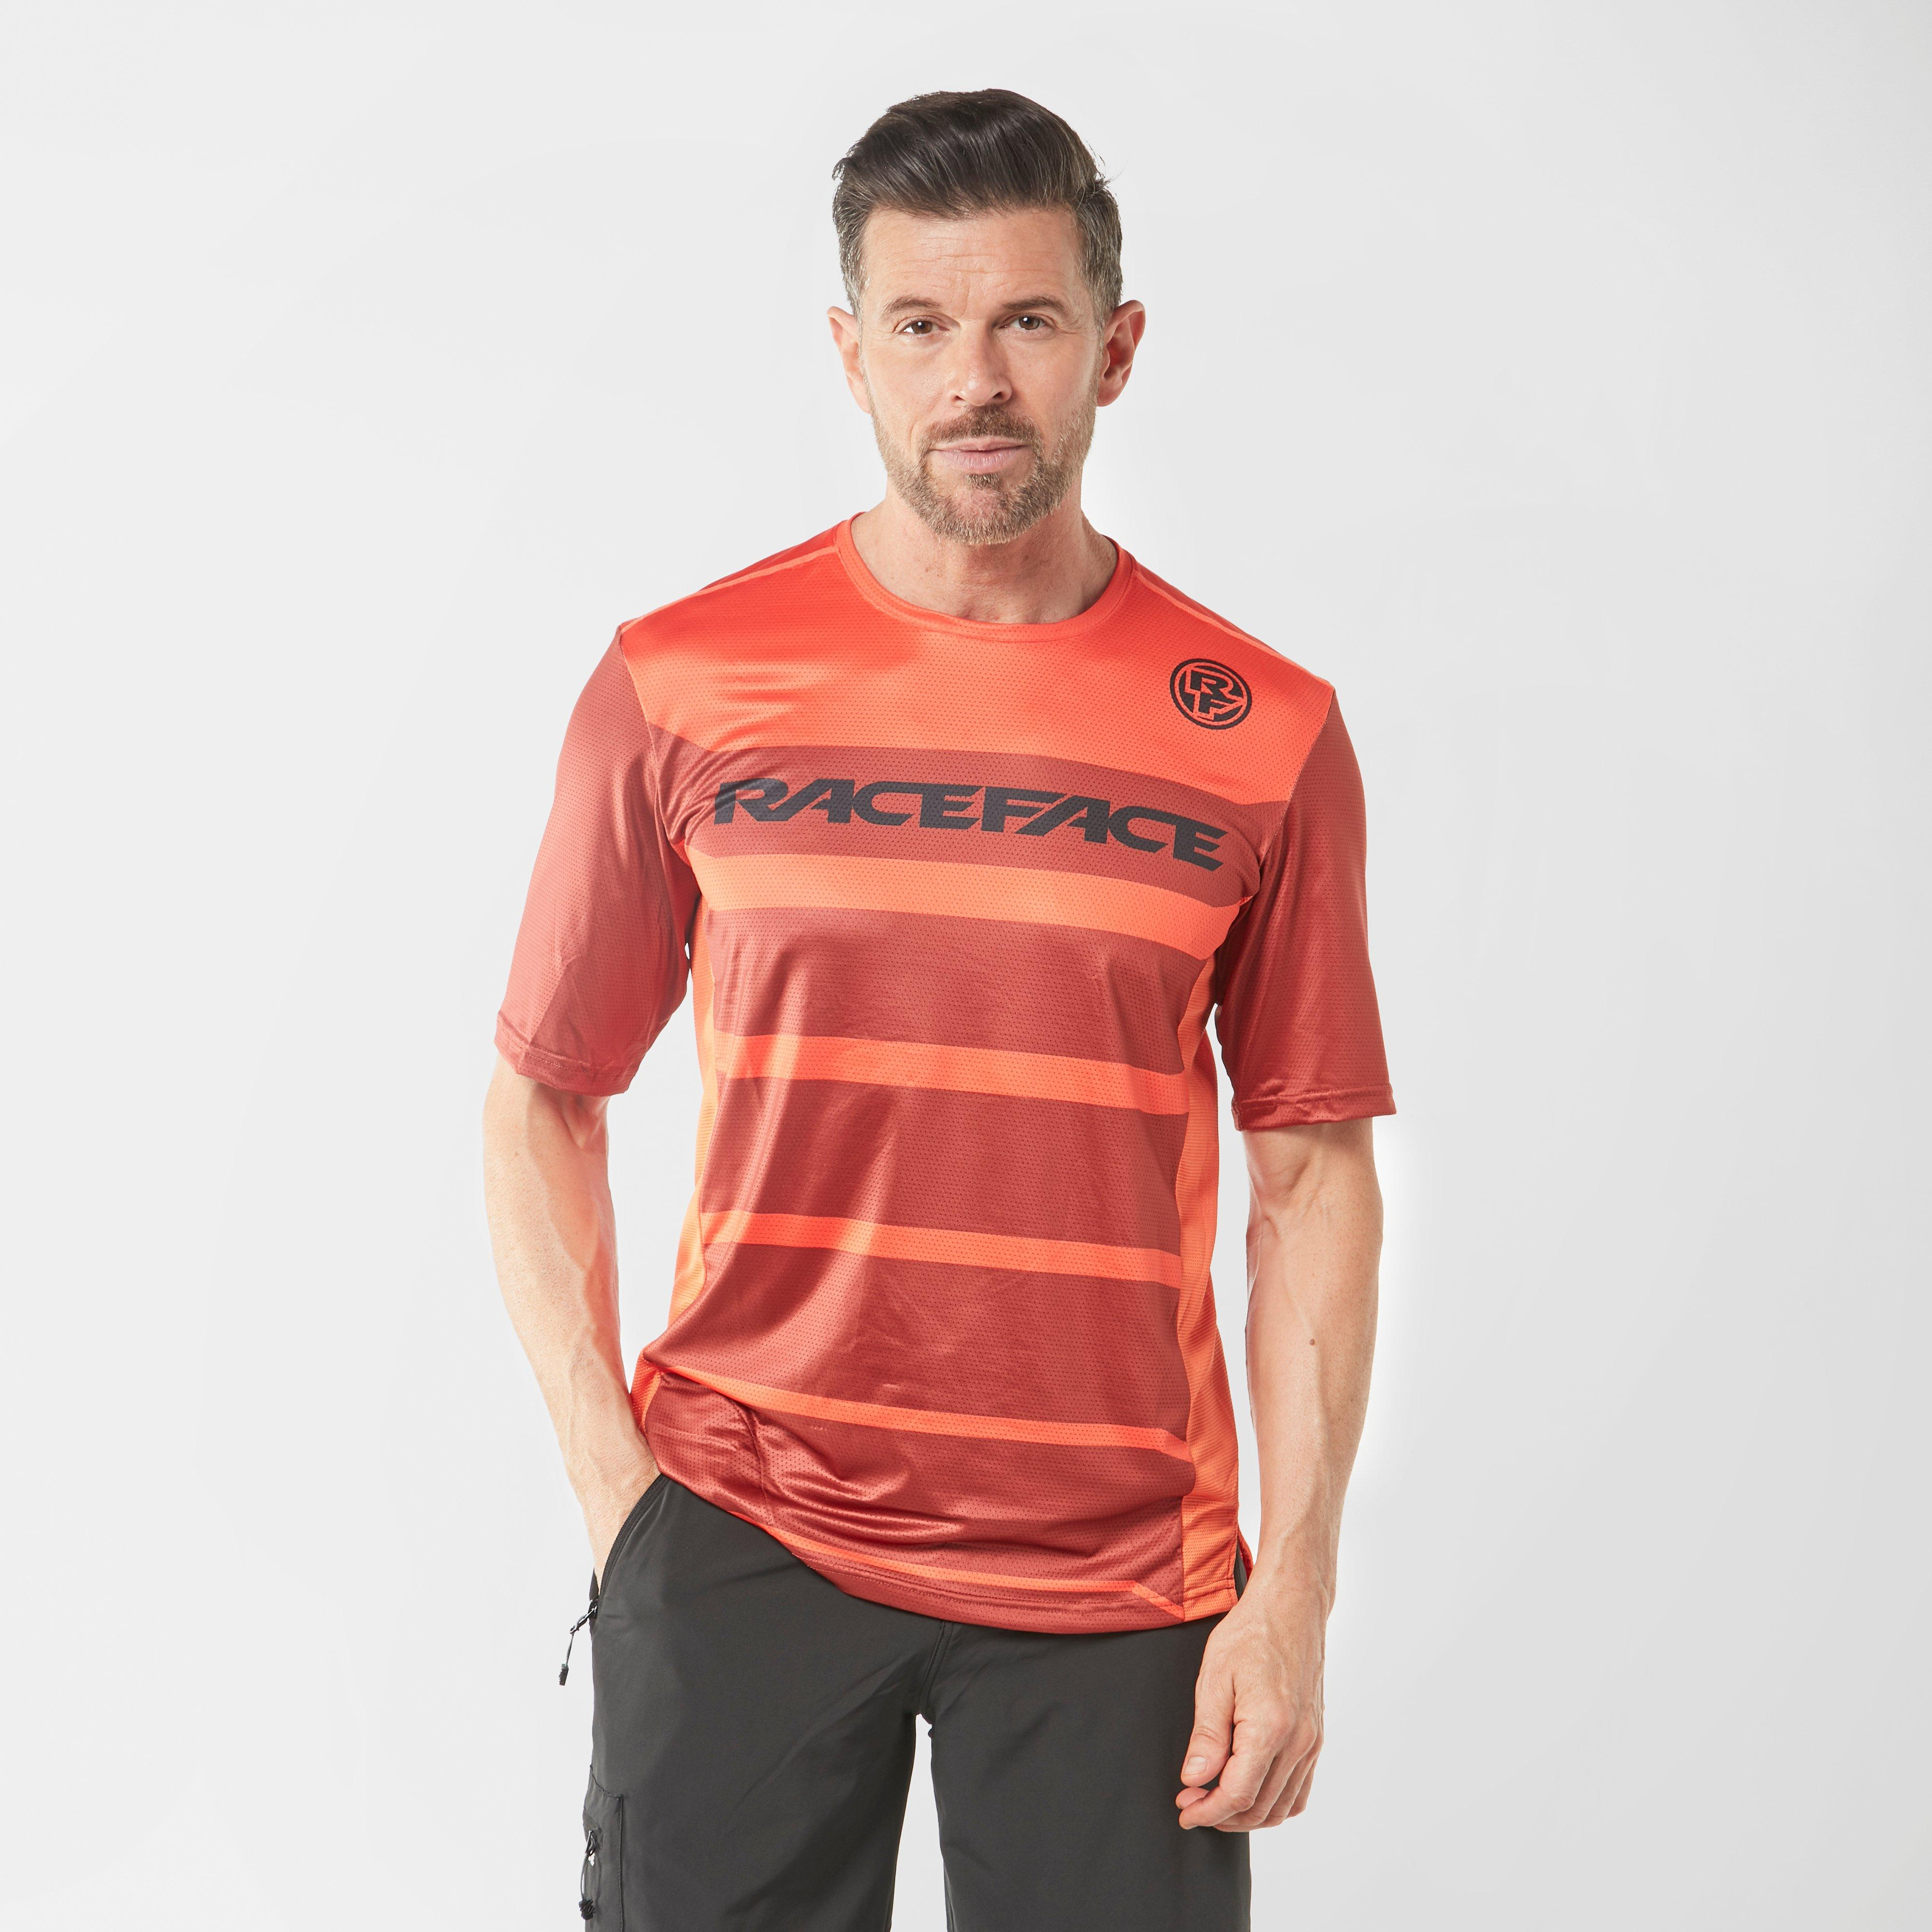 Raceface Raceface Mens Indy Short Sleeve Jersey - Red, Red